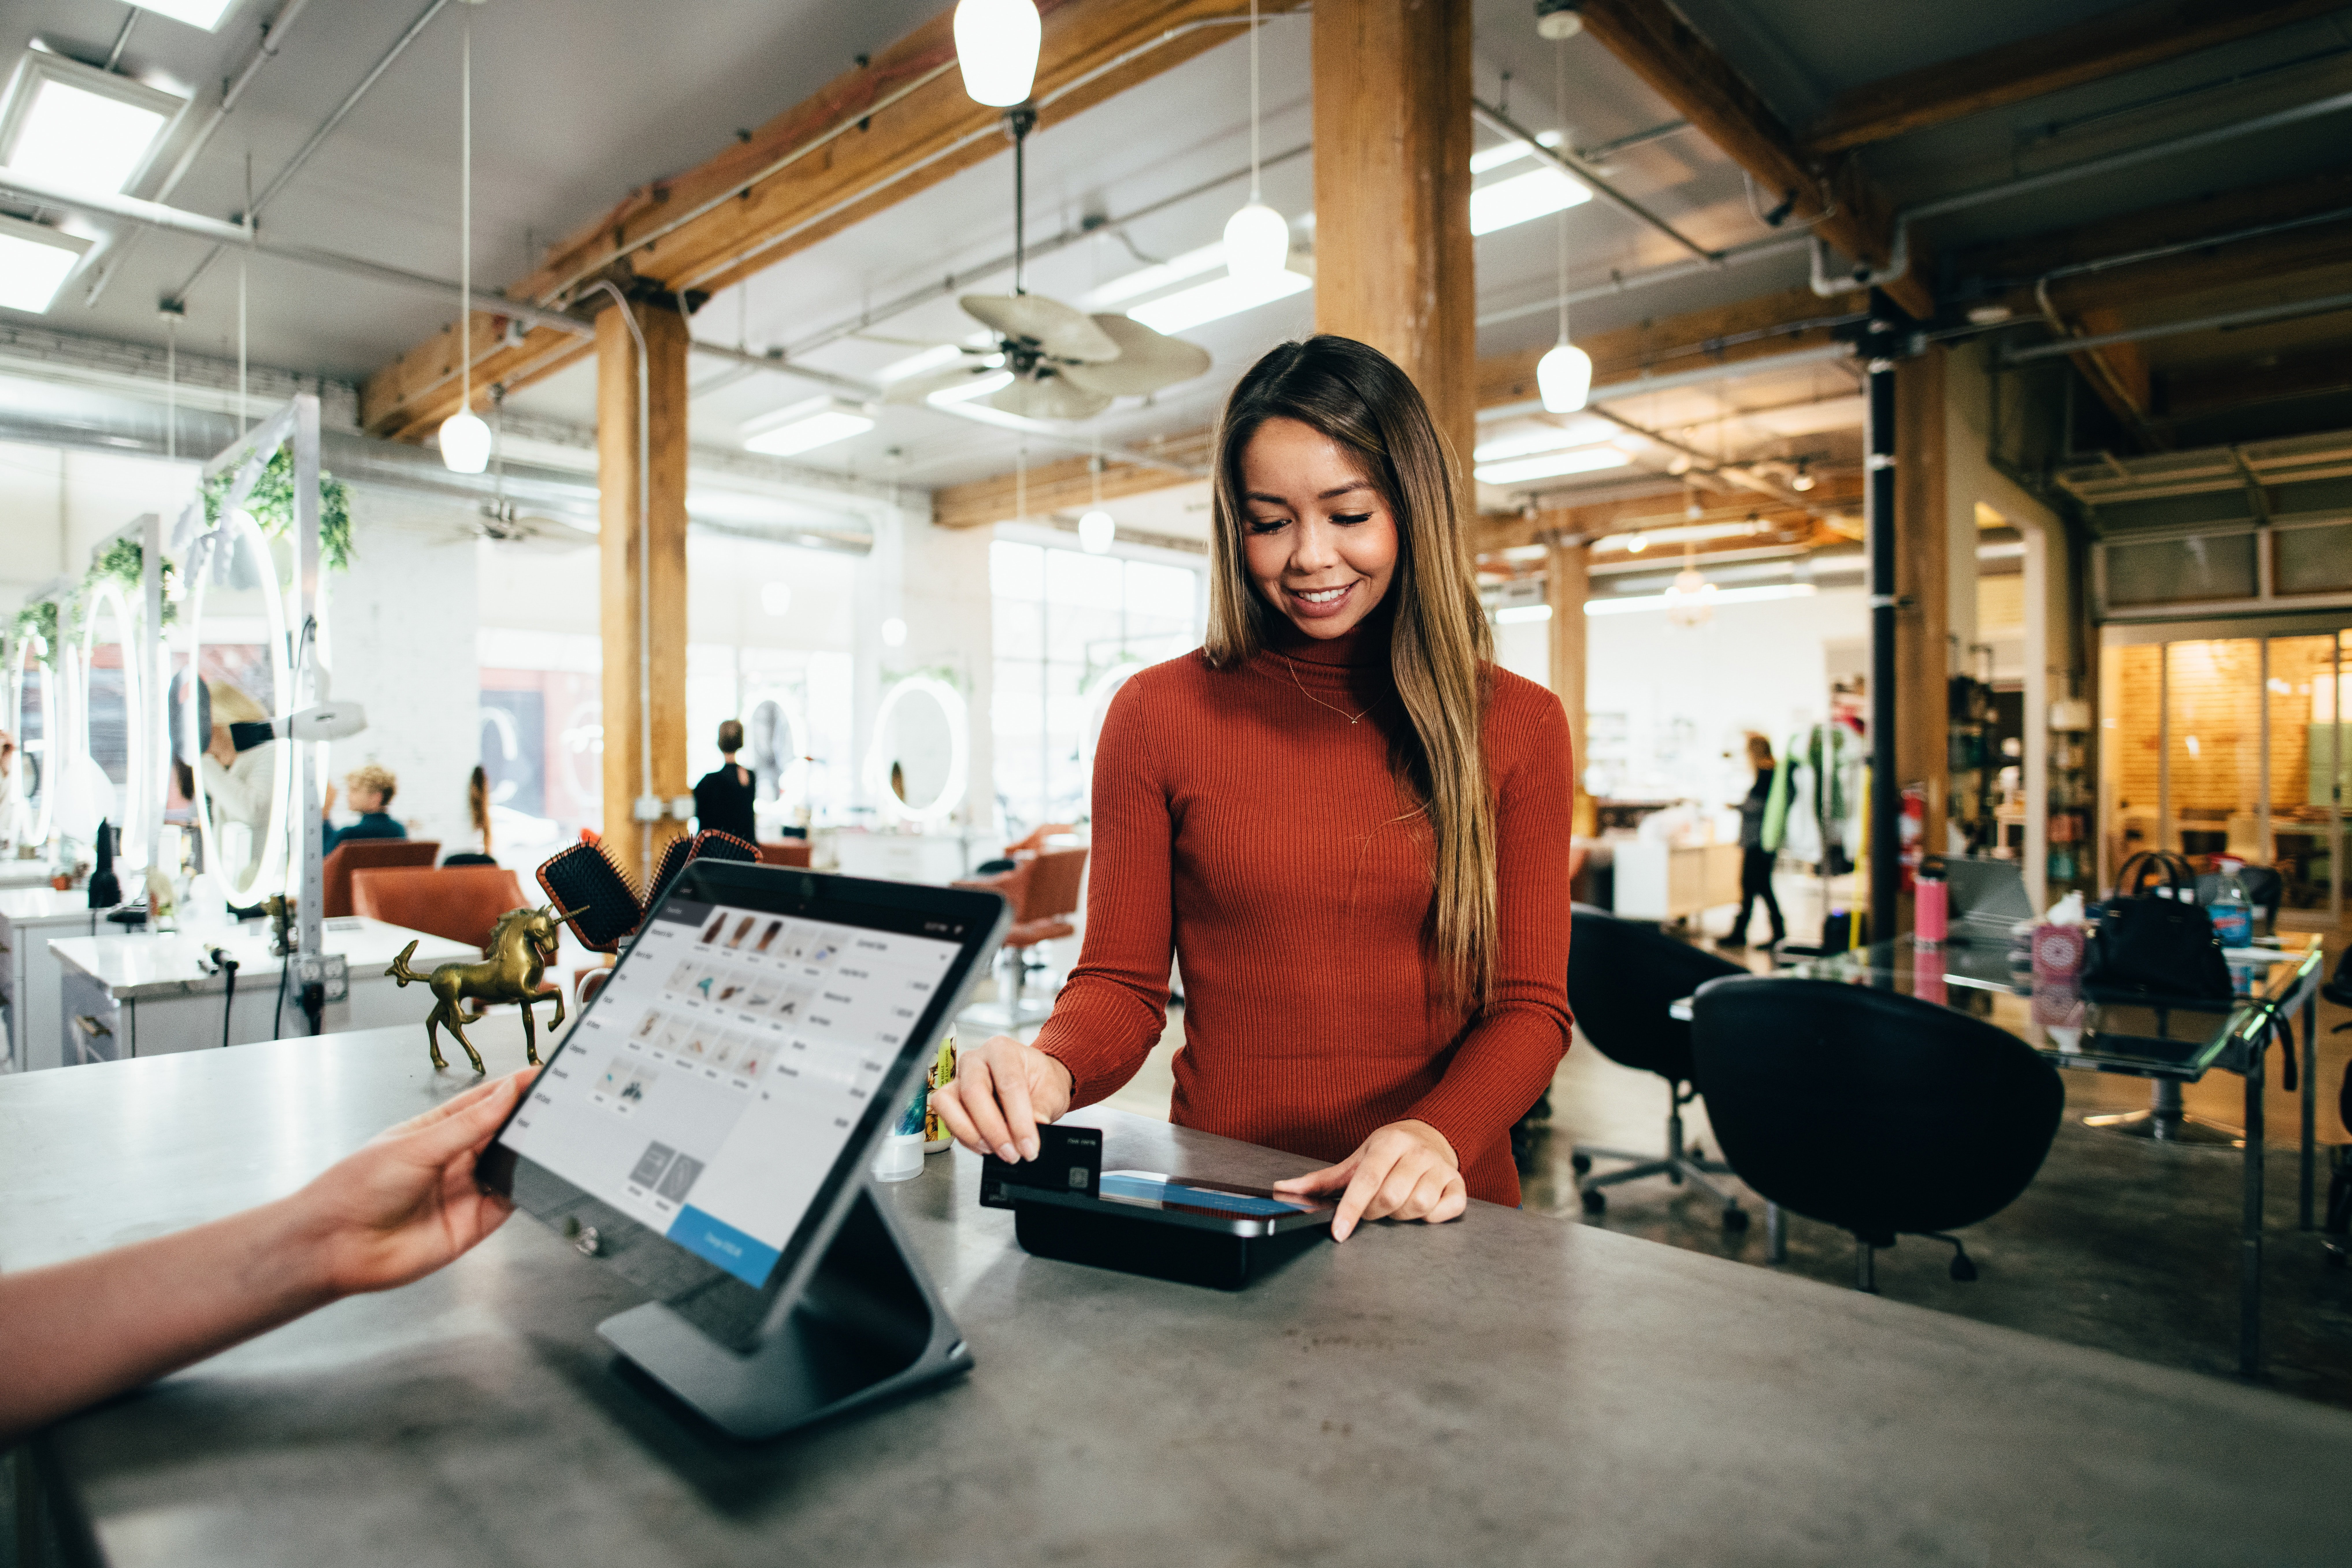 A woman at the cash counter. | Source: Unsplash